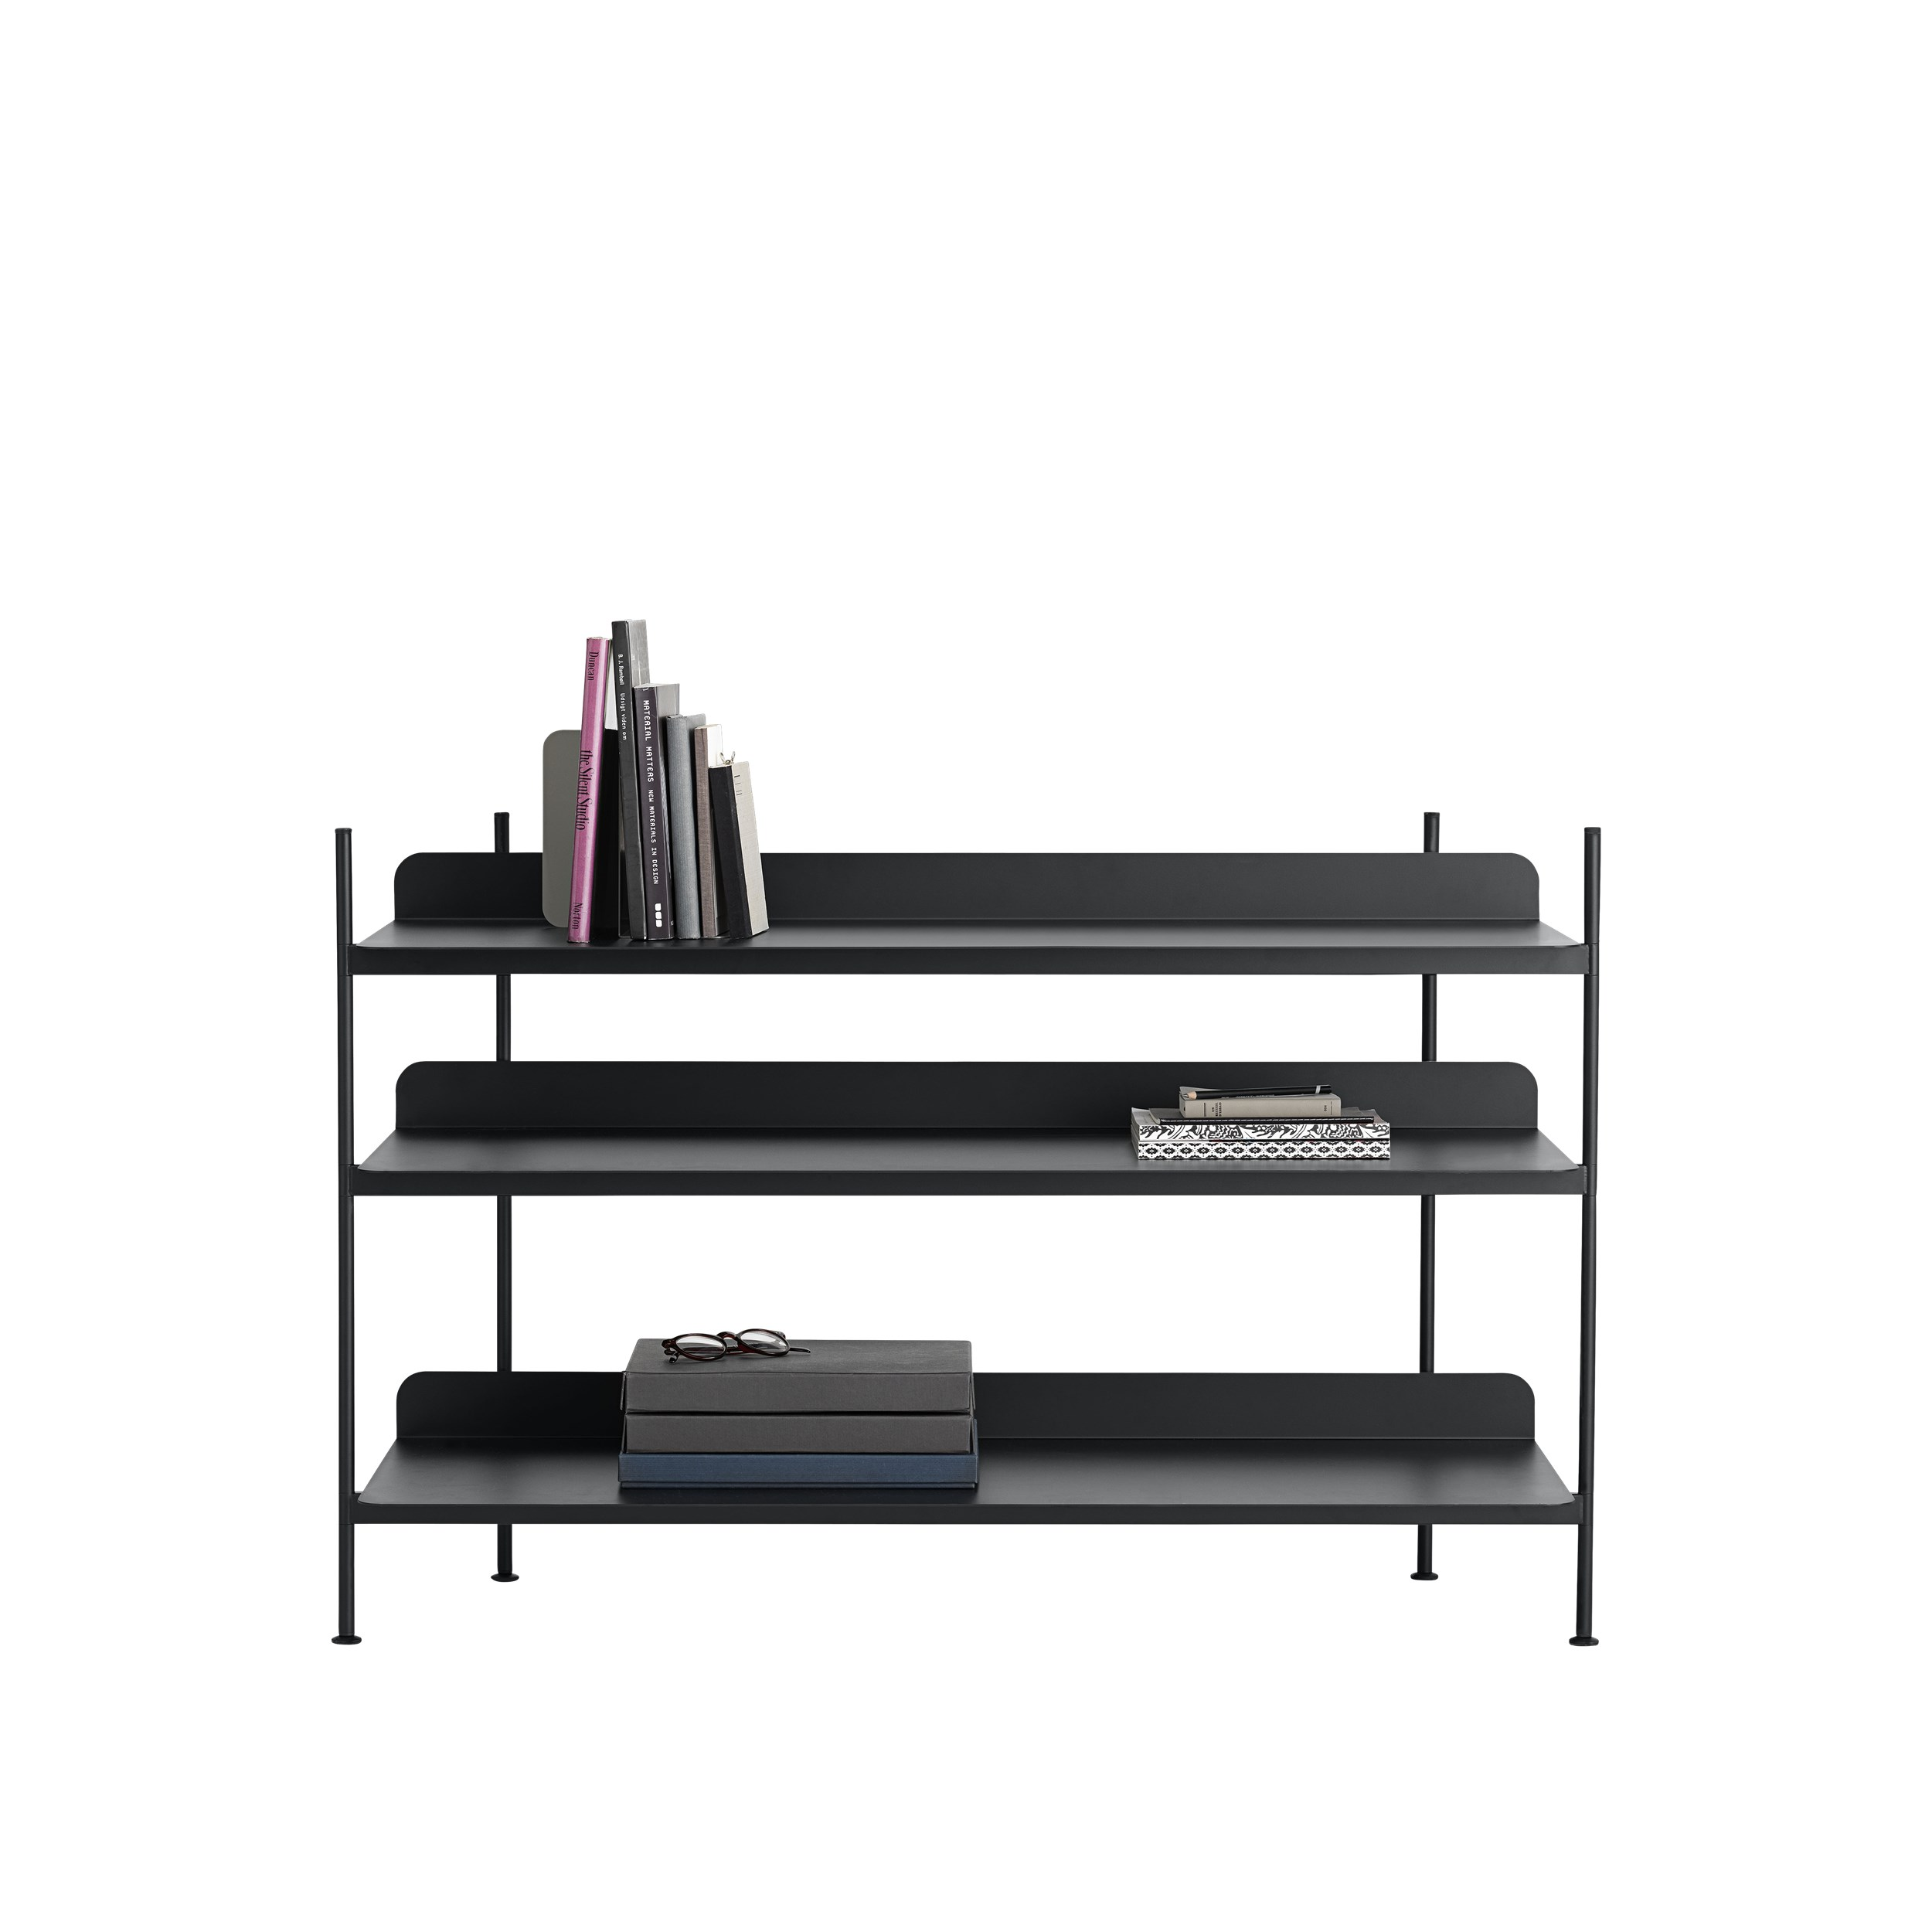 Compile Shelving System-No 2 Black